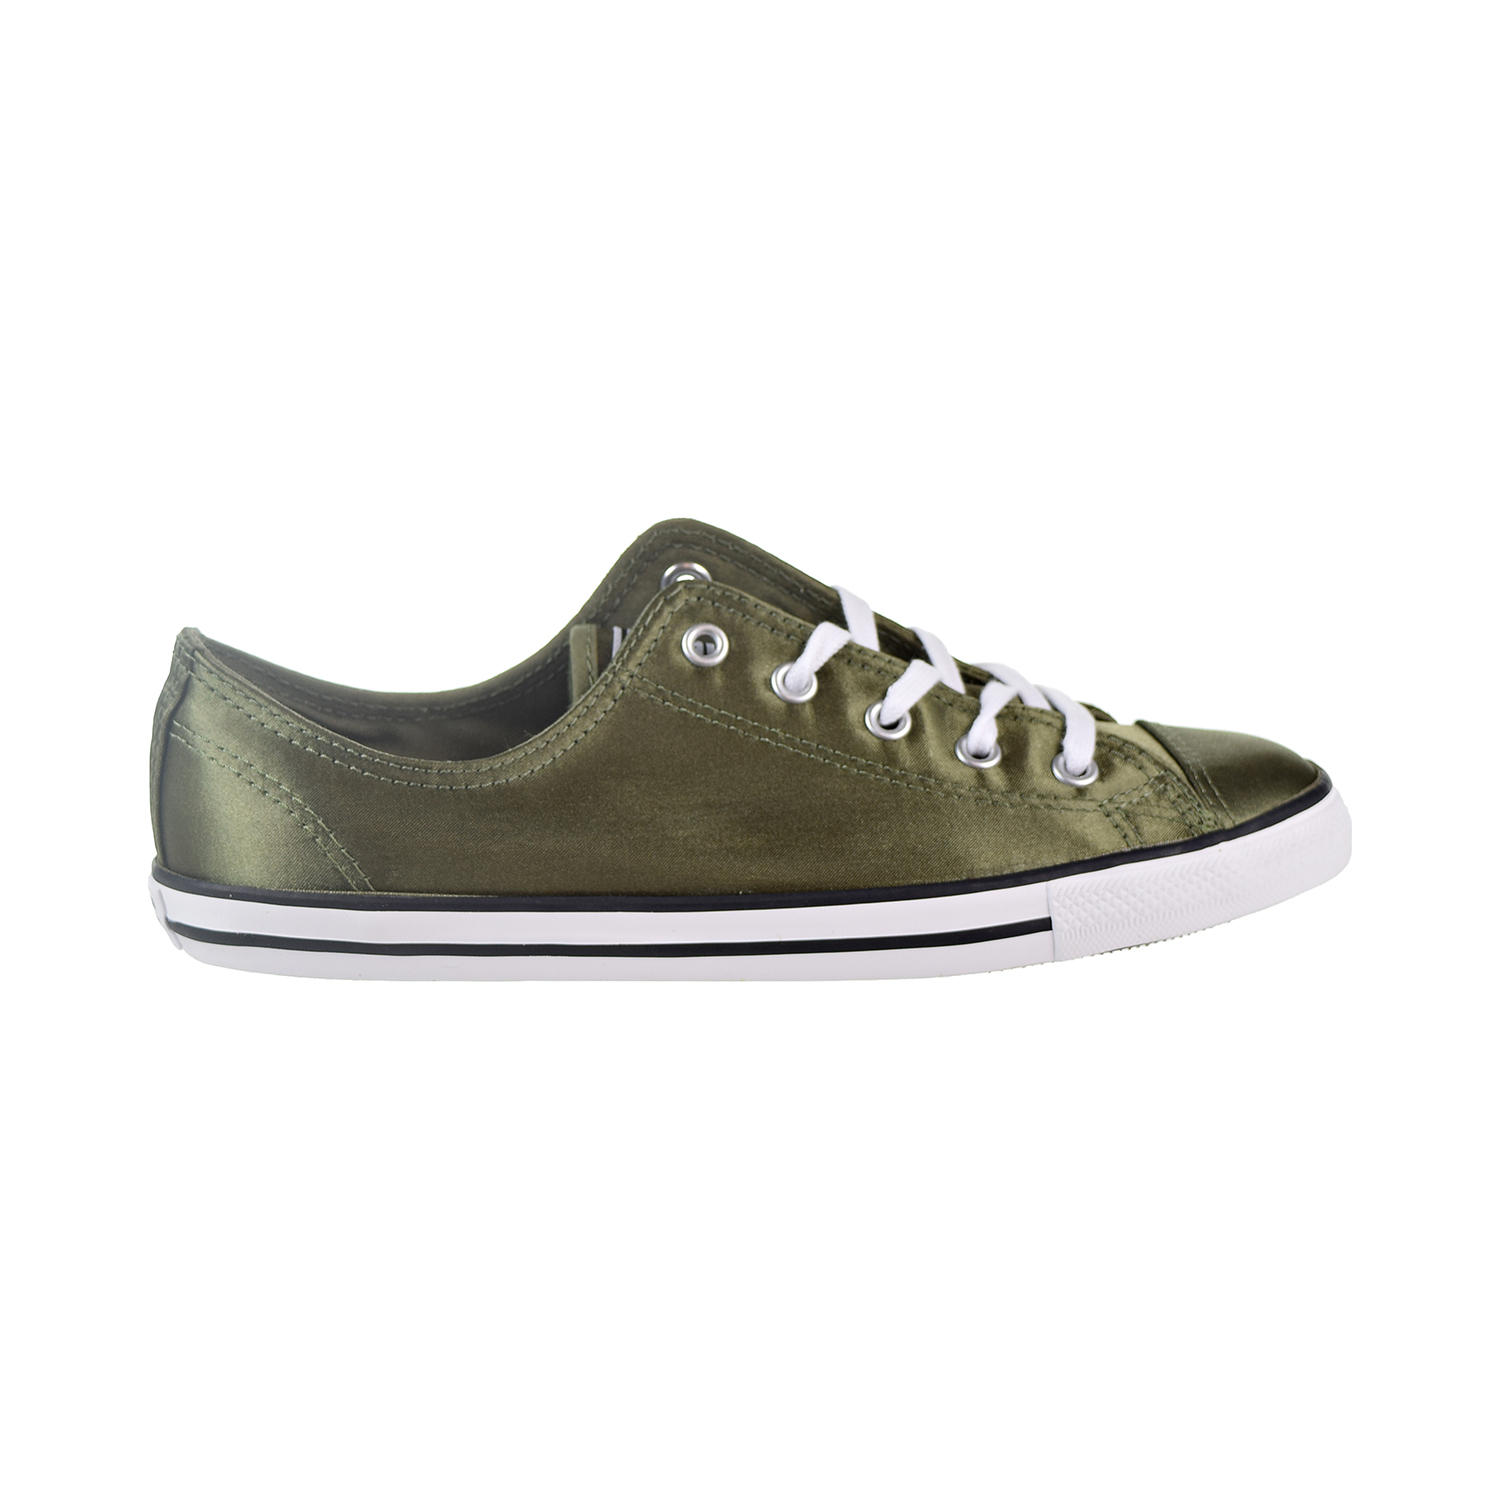 9ec75e8281c51d Details about Converse Chuck Taylor All Star Dainty OX Women s Shoes Medium  Olive White557976F